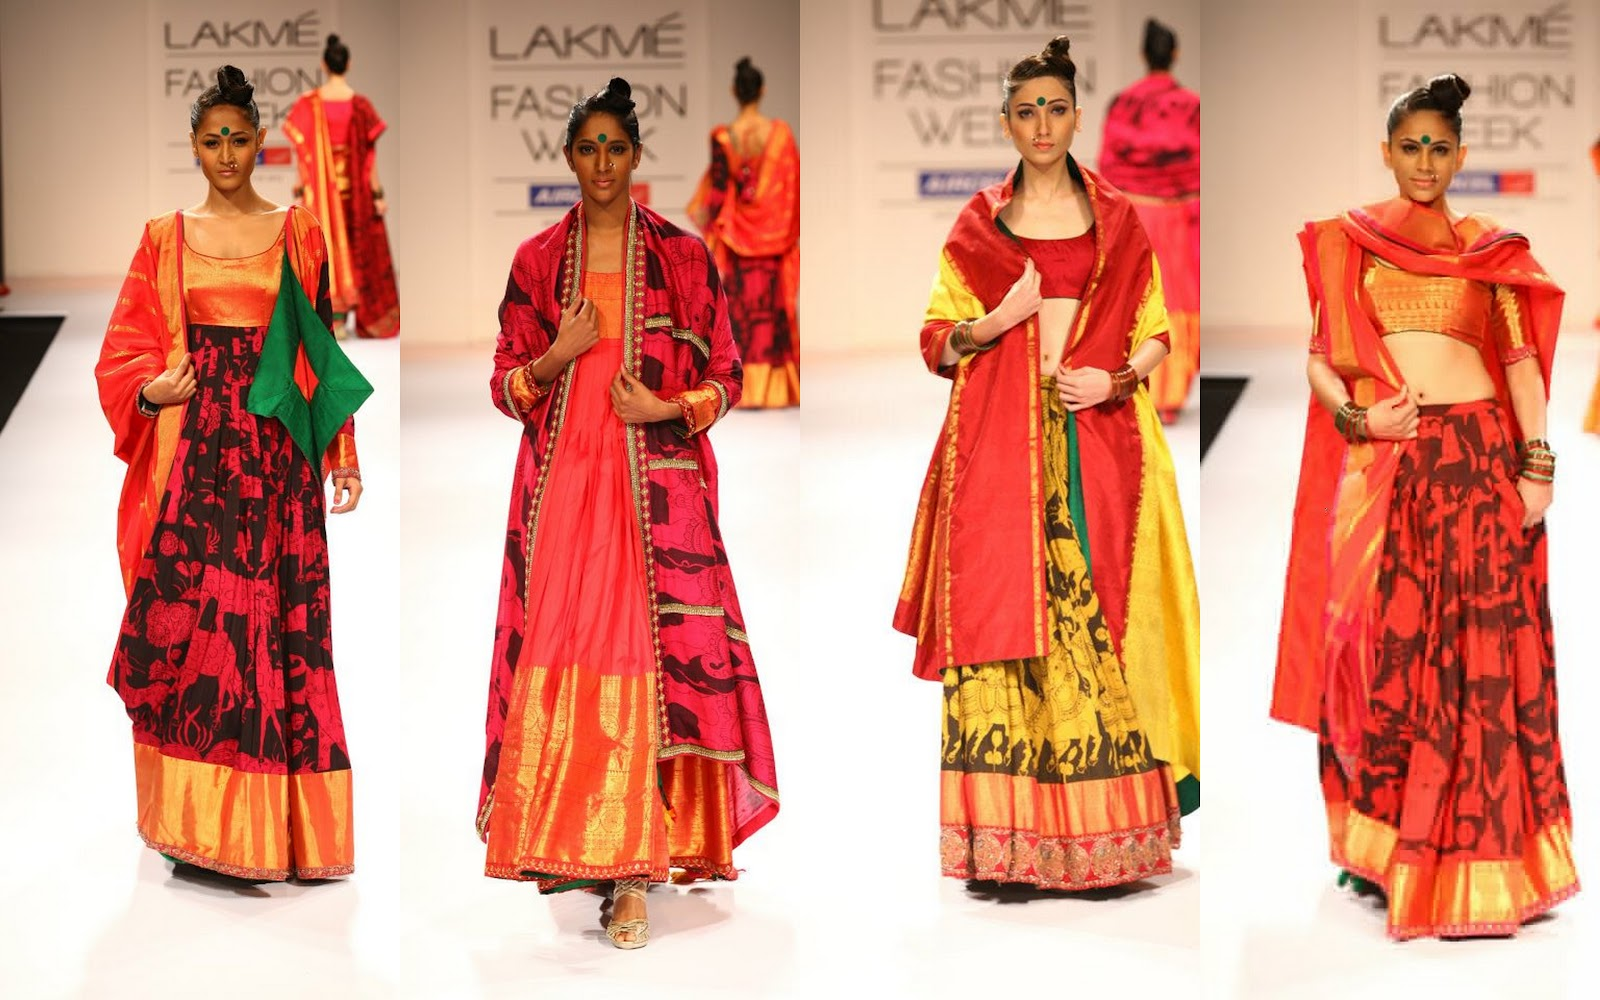 indian fashion and textiles Ritu kumar is the largest and most respected designer wear brand in india   and distinguished service in the field of fashion, textile and craftsmanship.